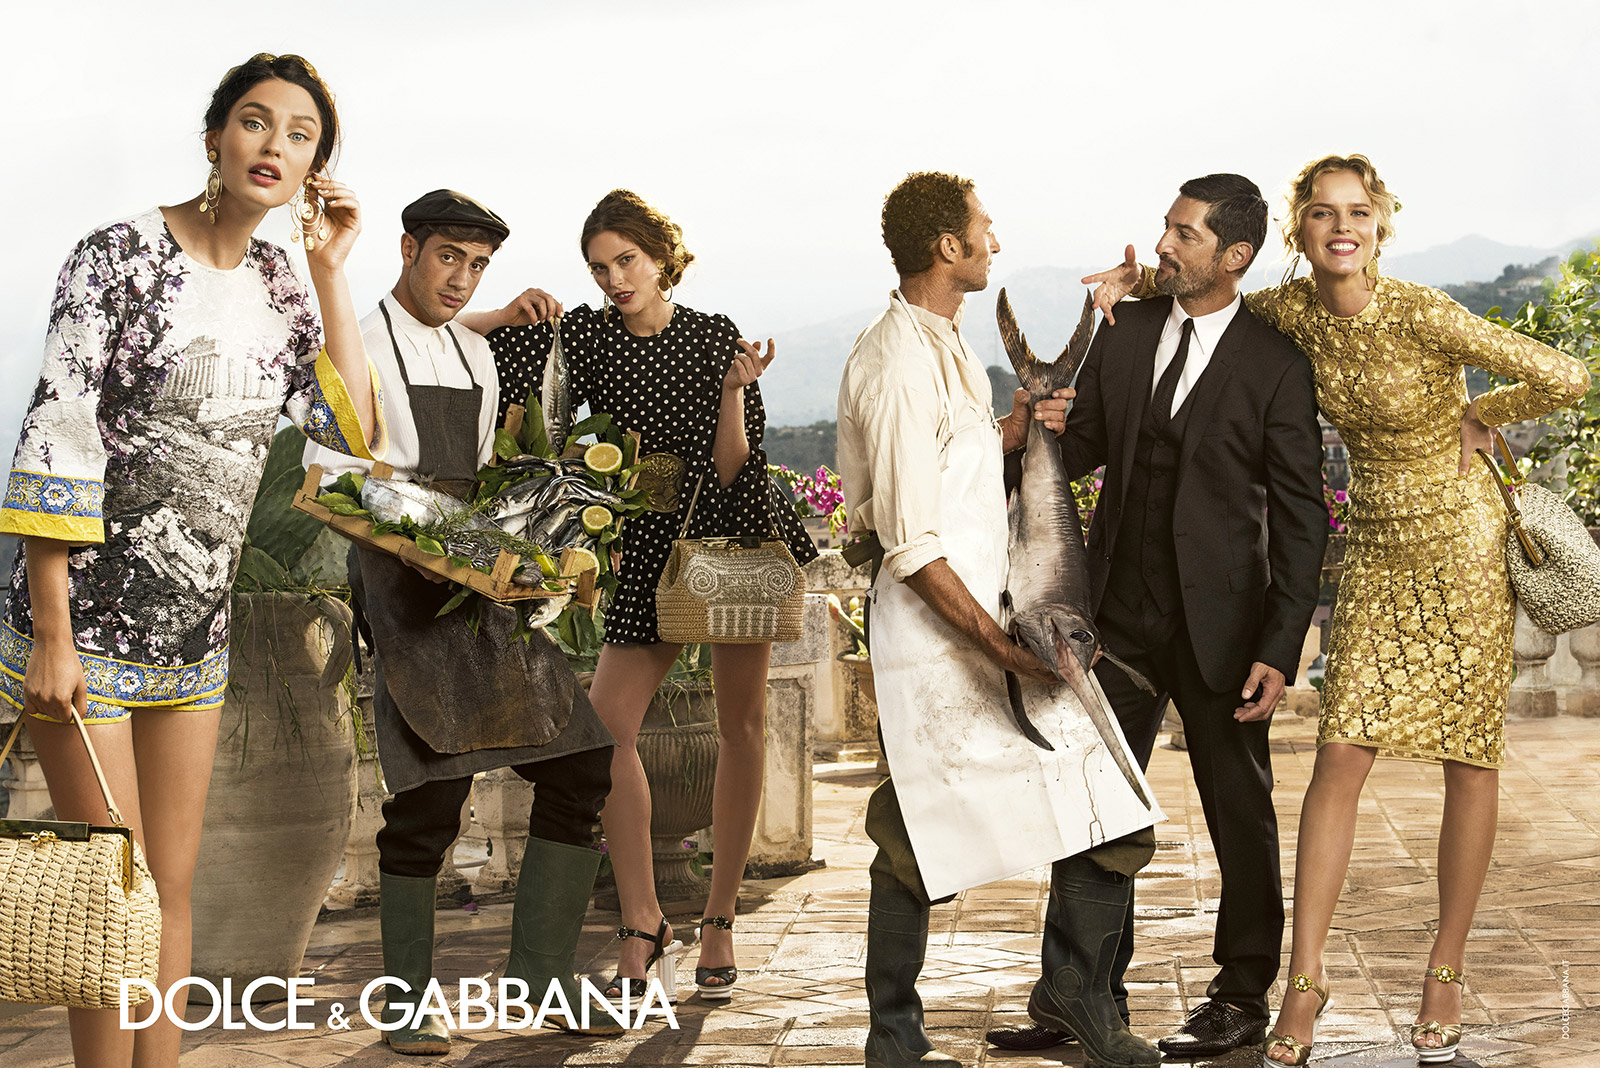 dolce-and-gabbana-ss-2014-womens-advertising-campaign-02-zoom-Copy